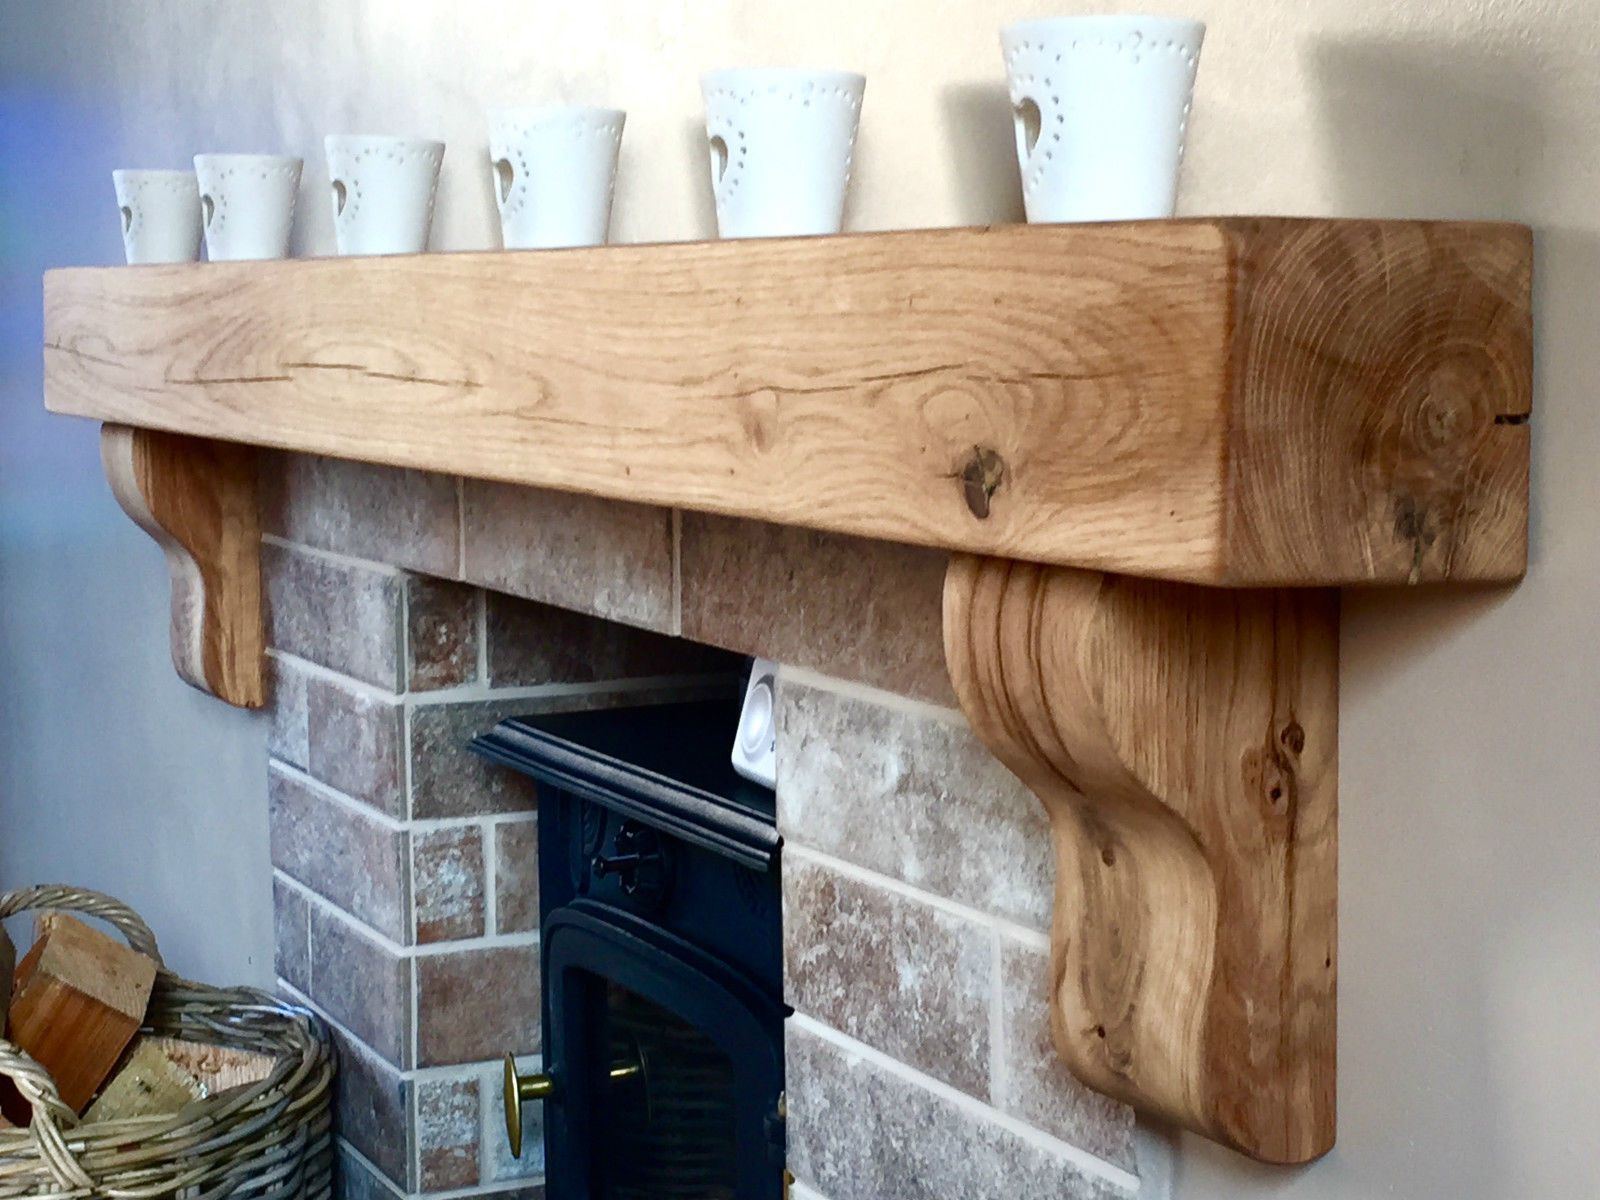 8 Simple and Impressive Tips Floating Shelf Placement